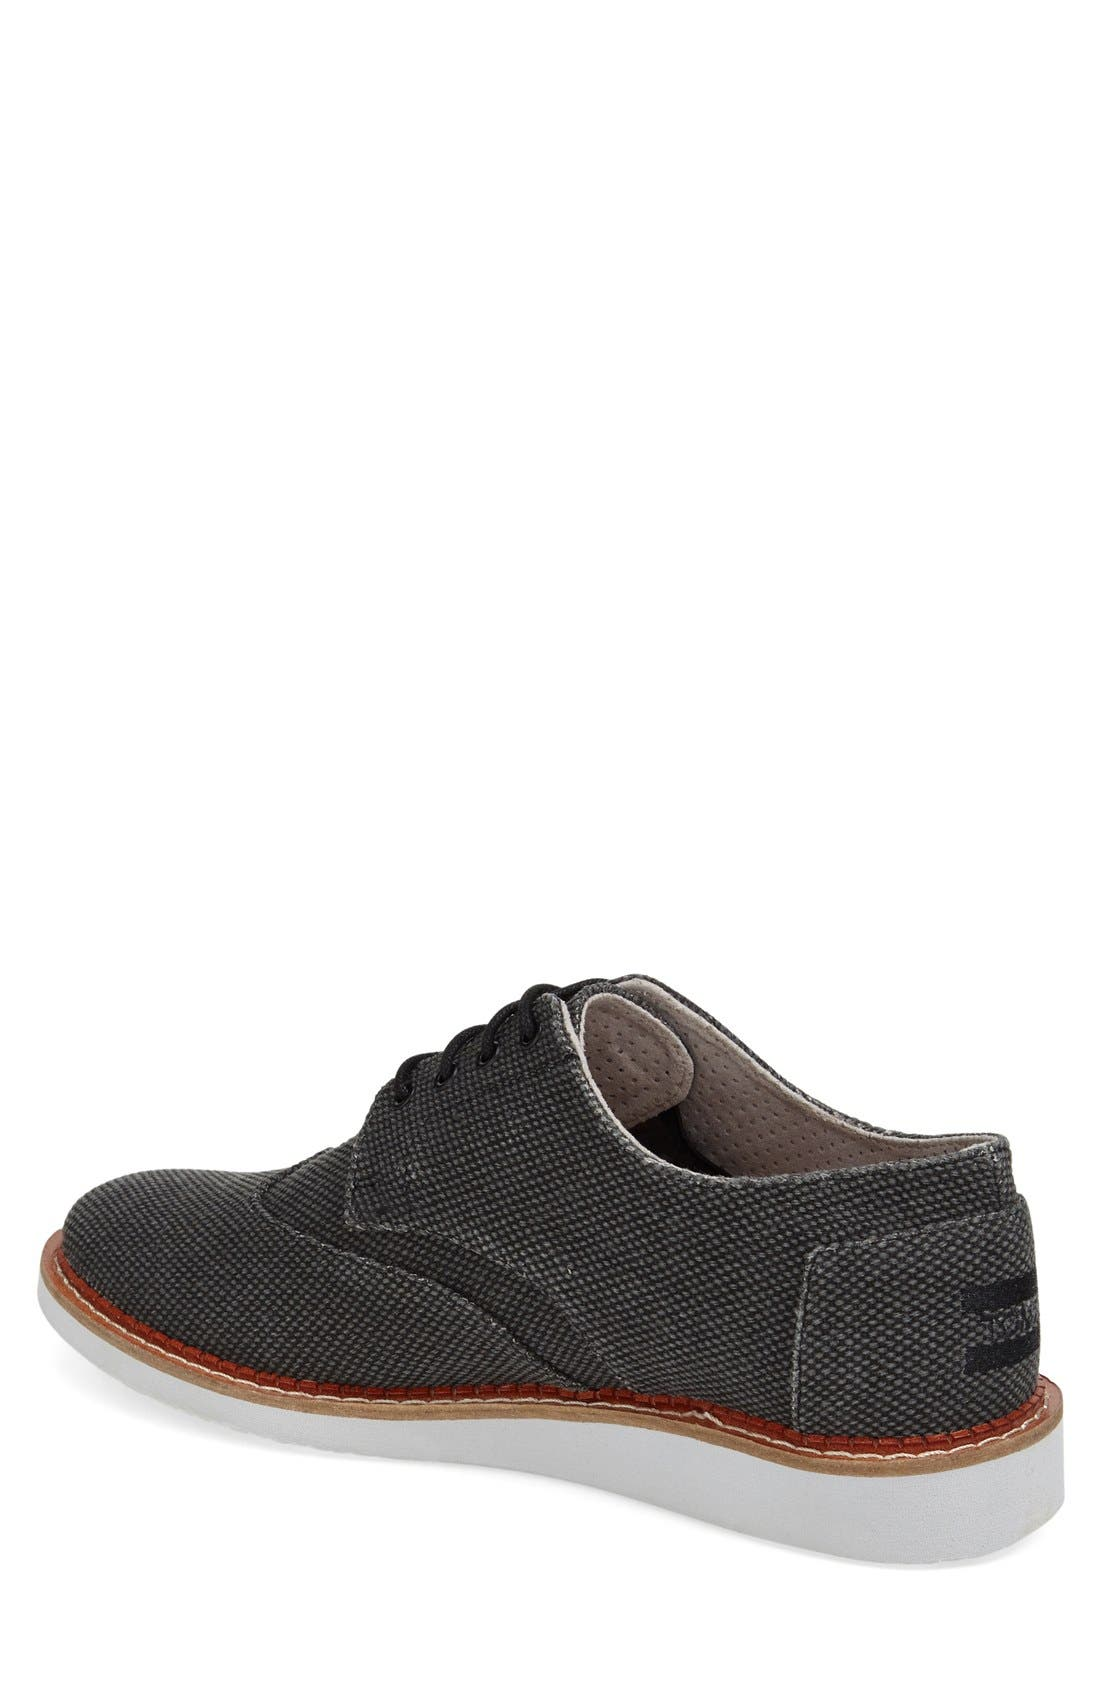 'Classic Brogue' Cotton Twill Derby,                             Alternate thumbnail 17, color,